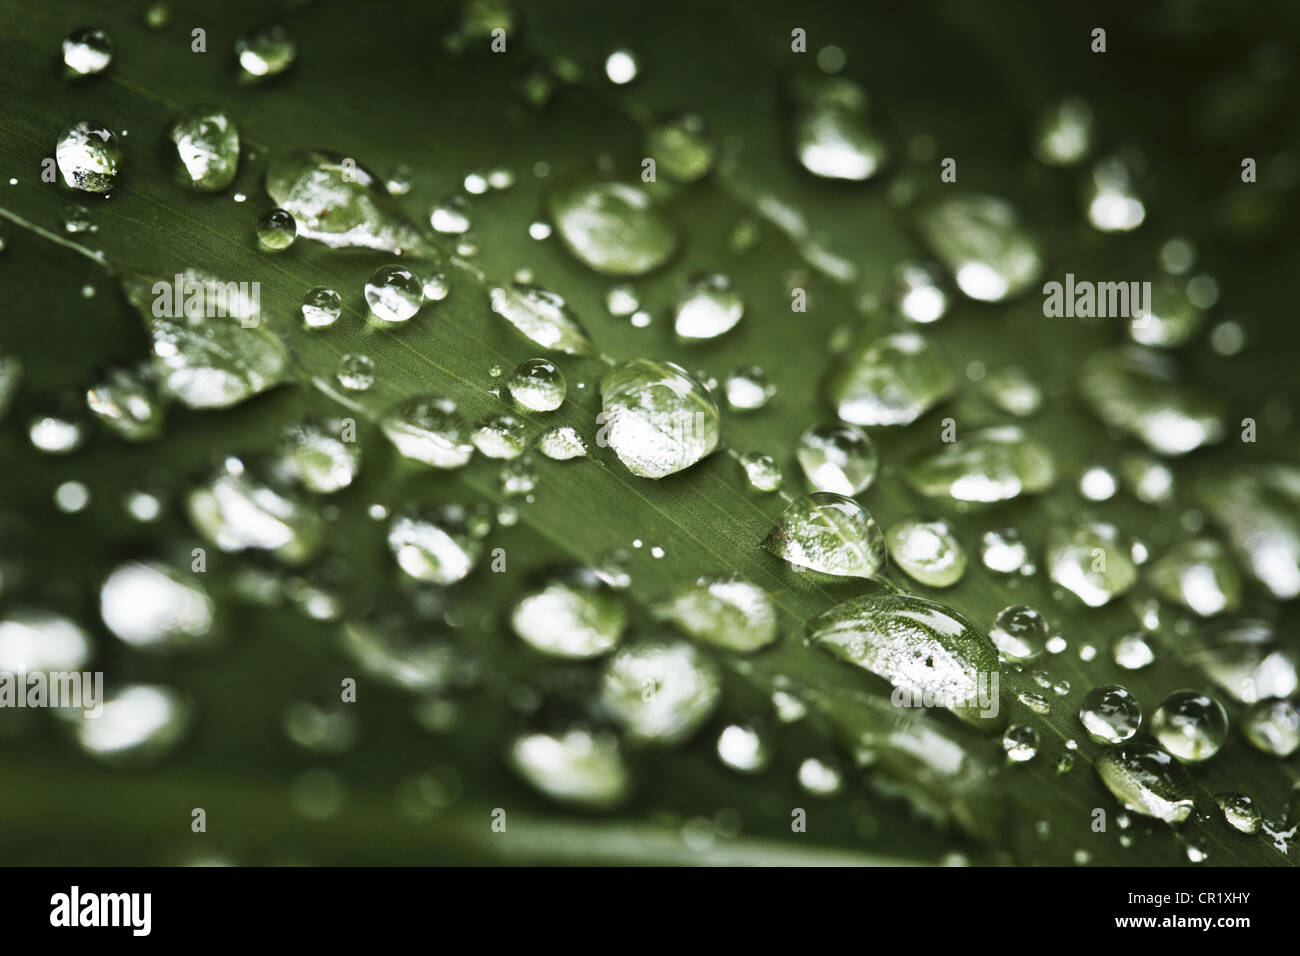 Close up of water droplets on leaf Banque D'Images